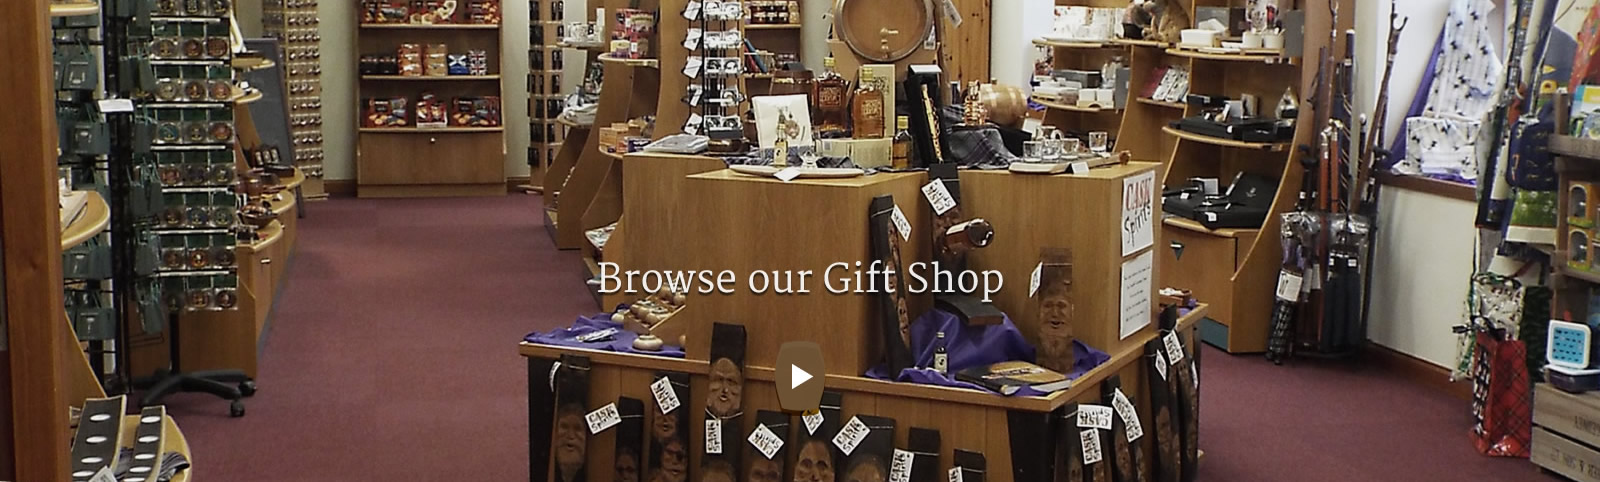 Speyside Cooperage Gift Shop Craigellachie Moray